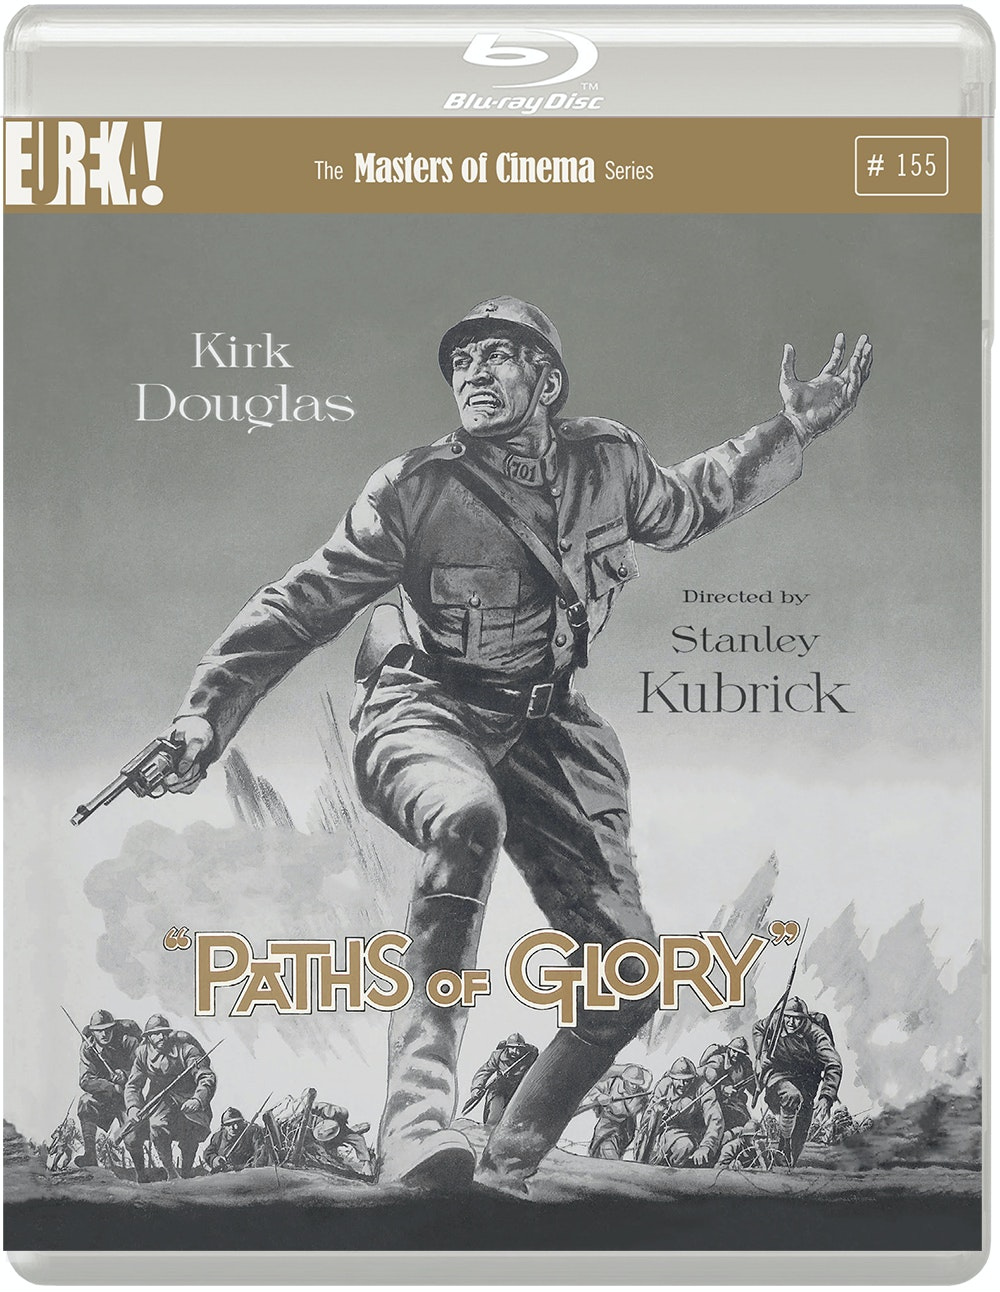 Paths Of Glory sweepstakes